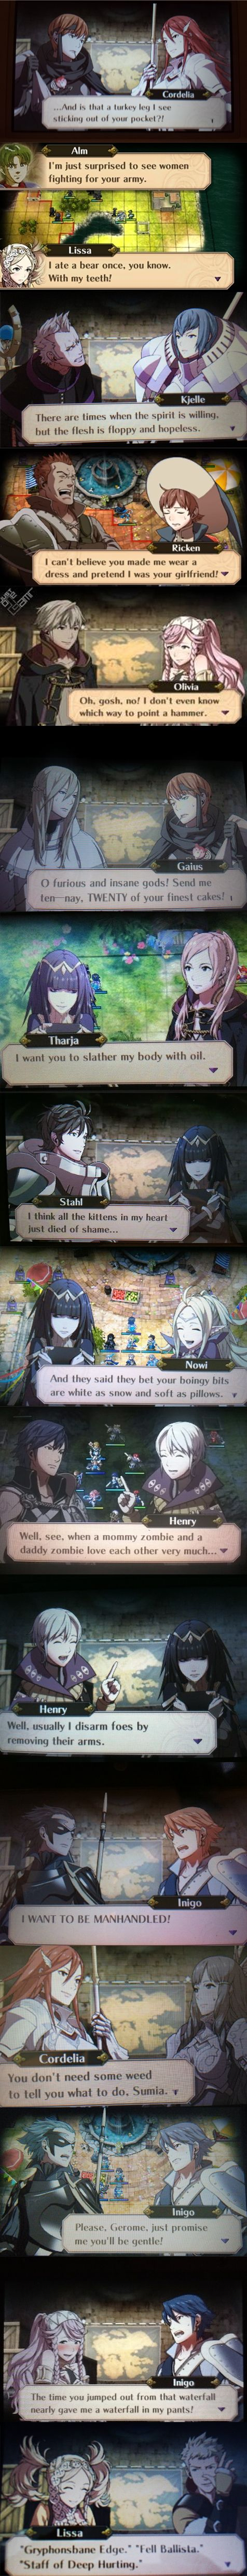 Fire Emblem: Awakening. Just some of the many, various, funny conversations that are in this wonderful game!